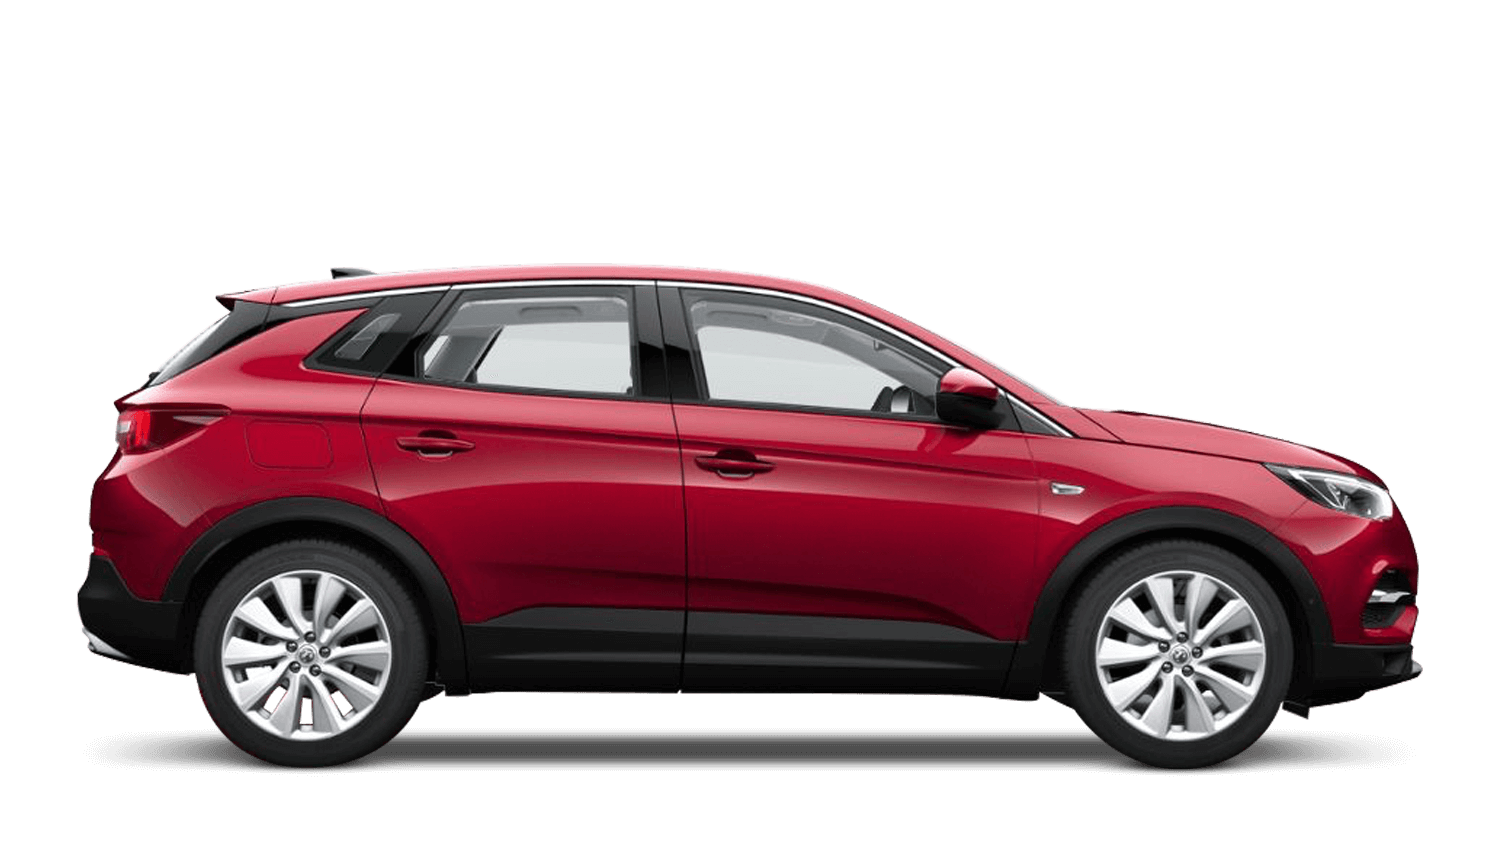 Dark Ruby Red (Metallic) Vauxhall Grandland X